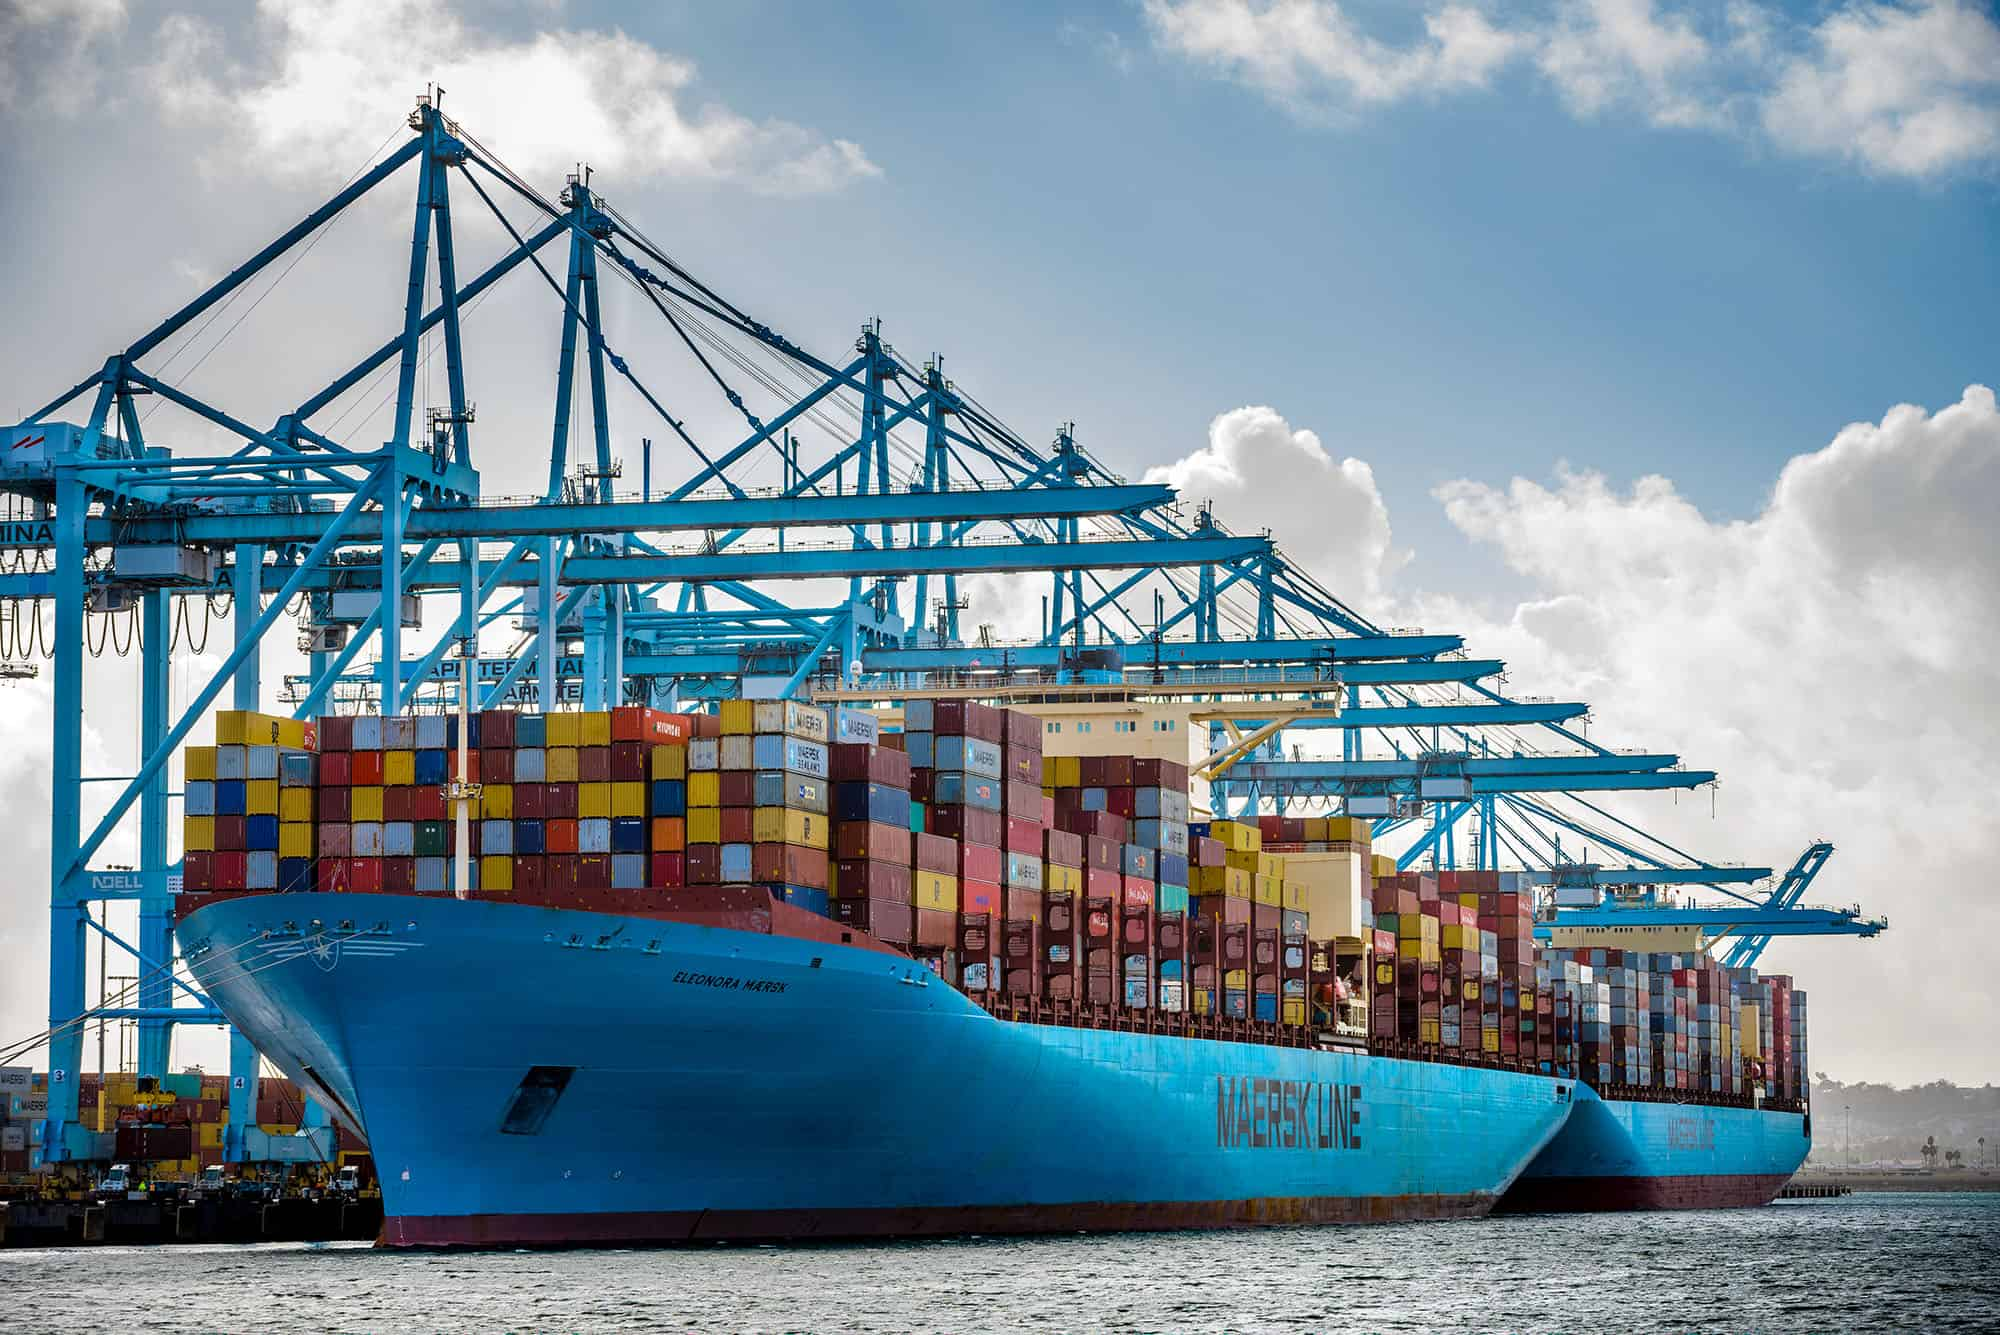 Soaring demand and supply chain bottlenecks help Maersk achieve record results